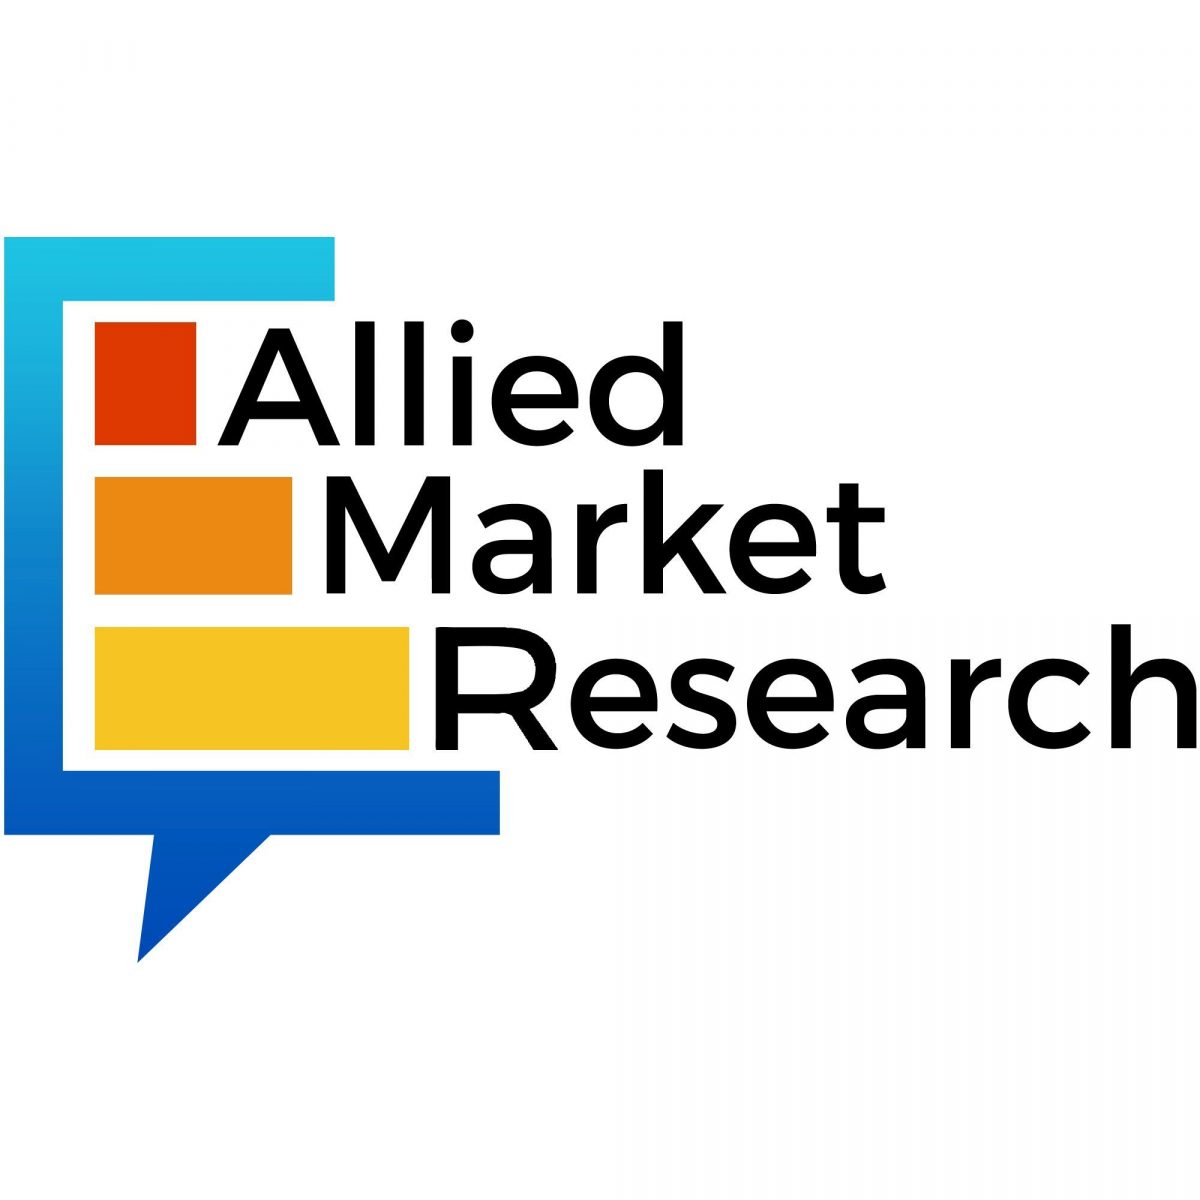 Auto Dimming Mirror Market to Reach $2.77 Bn, Globally, by 2026 at 5.3% CAGR: Allied Market Research